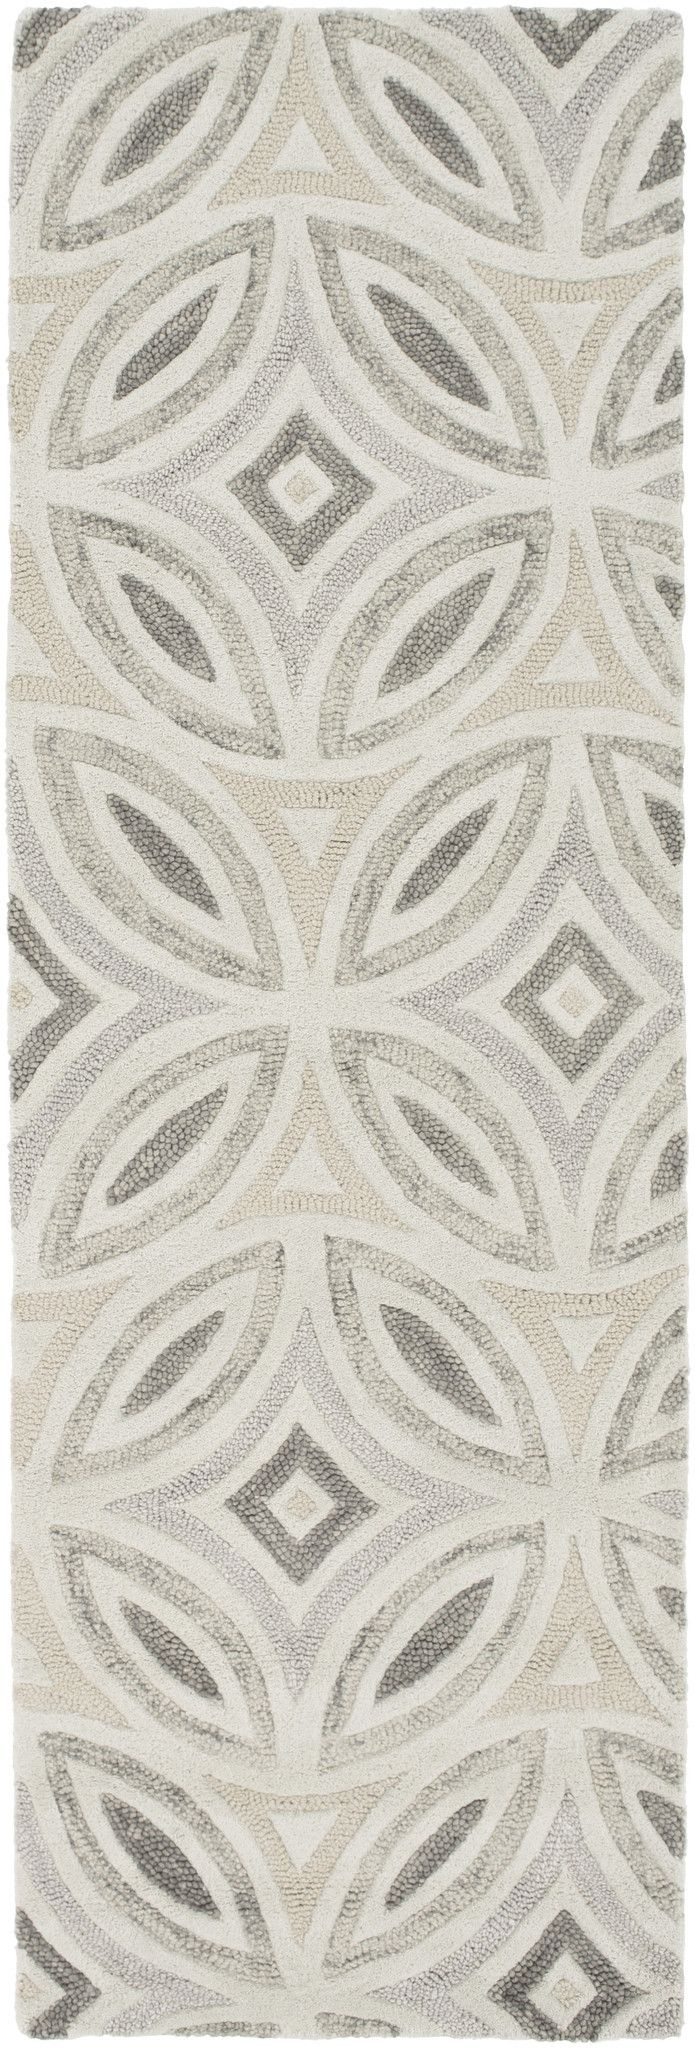 Surya PSV46 Perspective Neutral Runner Area Rug